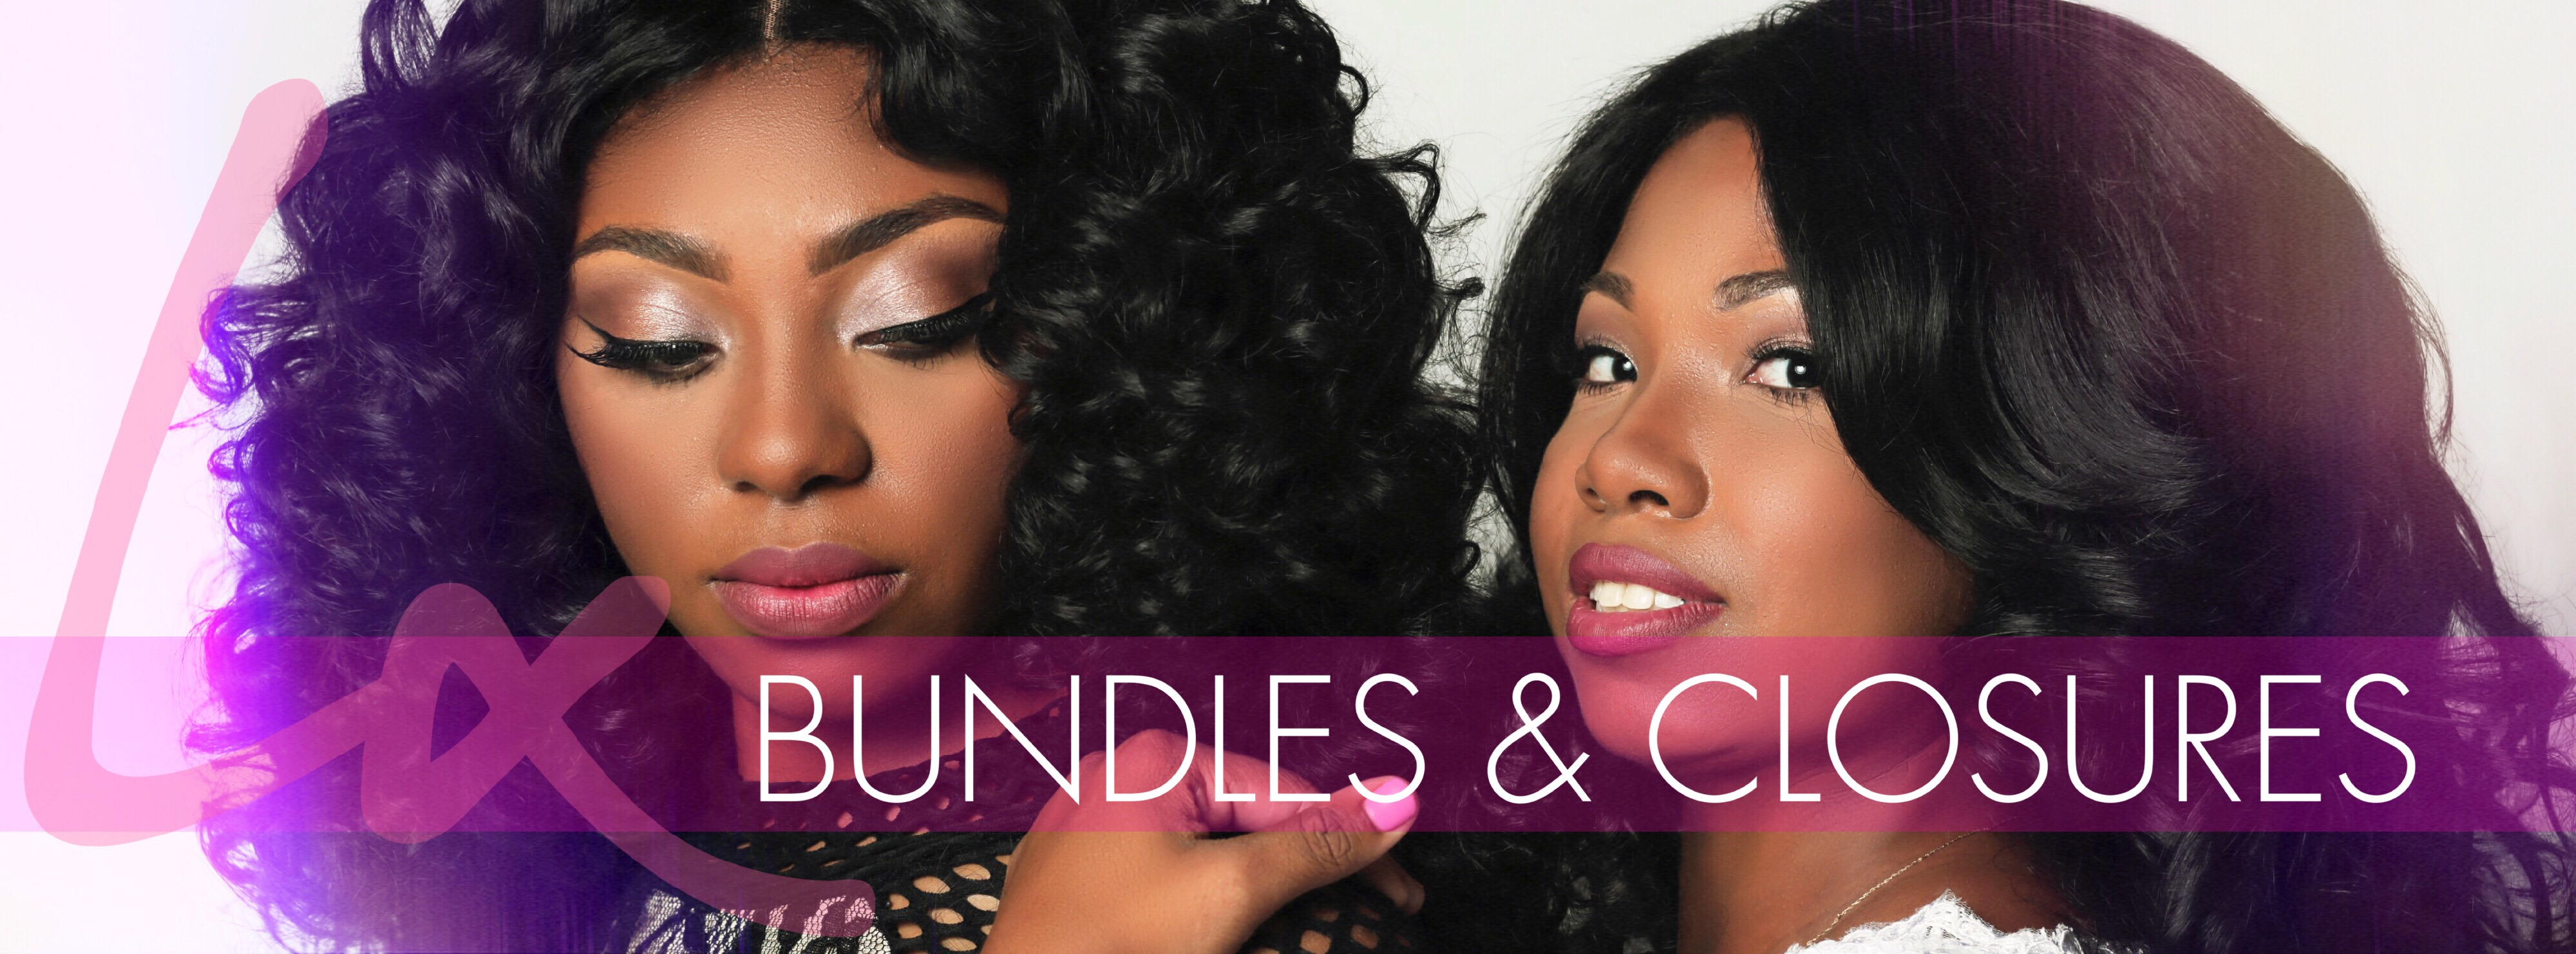 Bundles & Closures